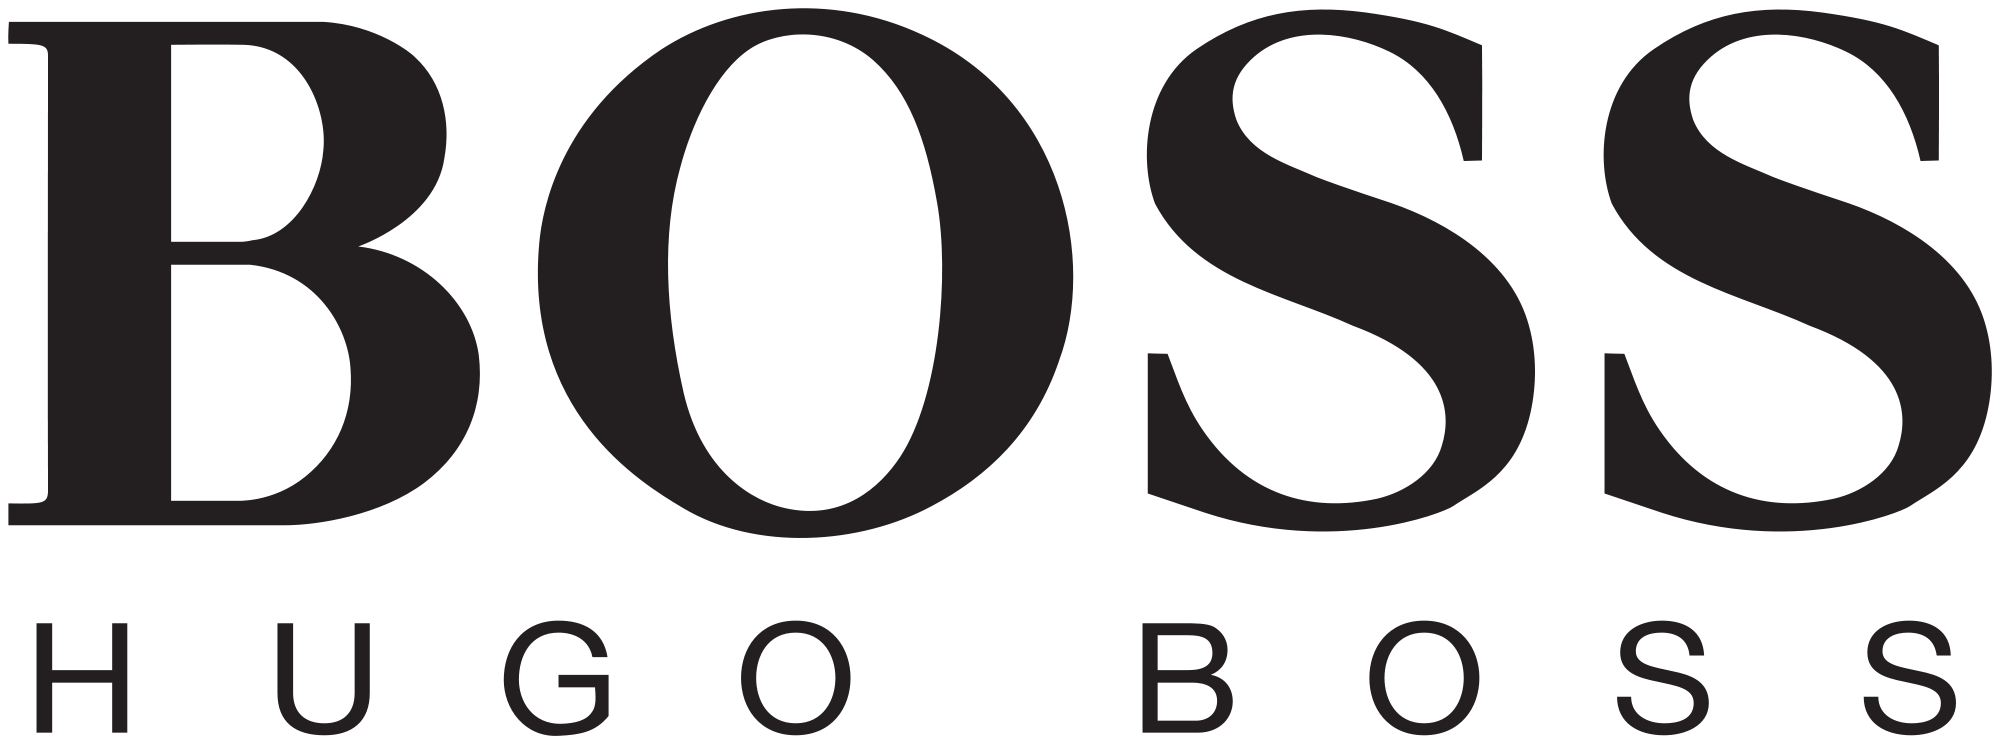 Hugo Boss aksesoari